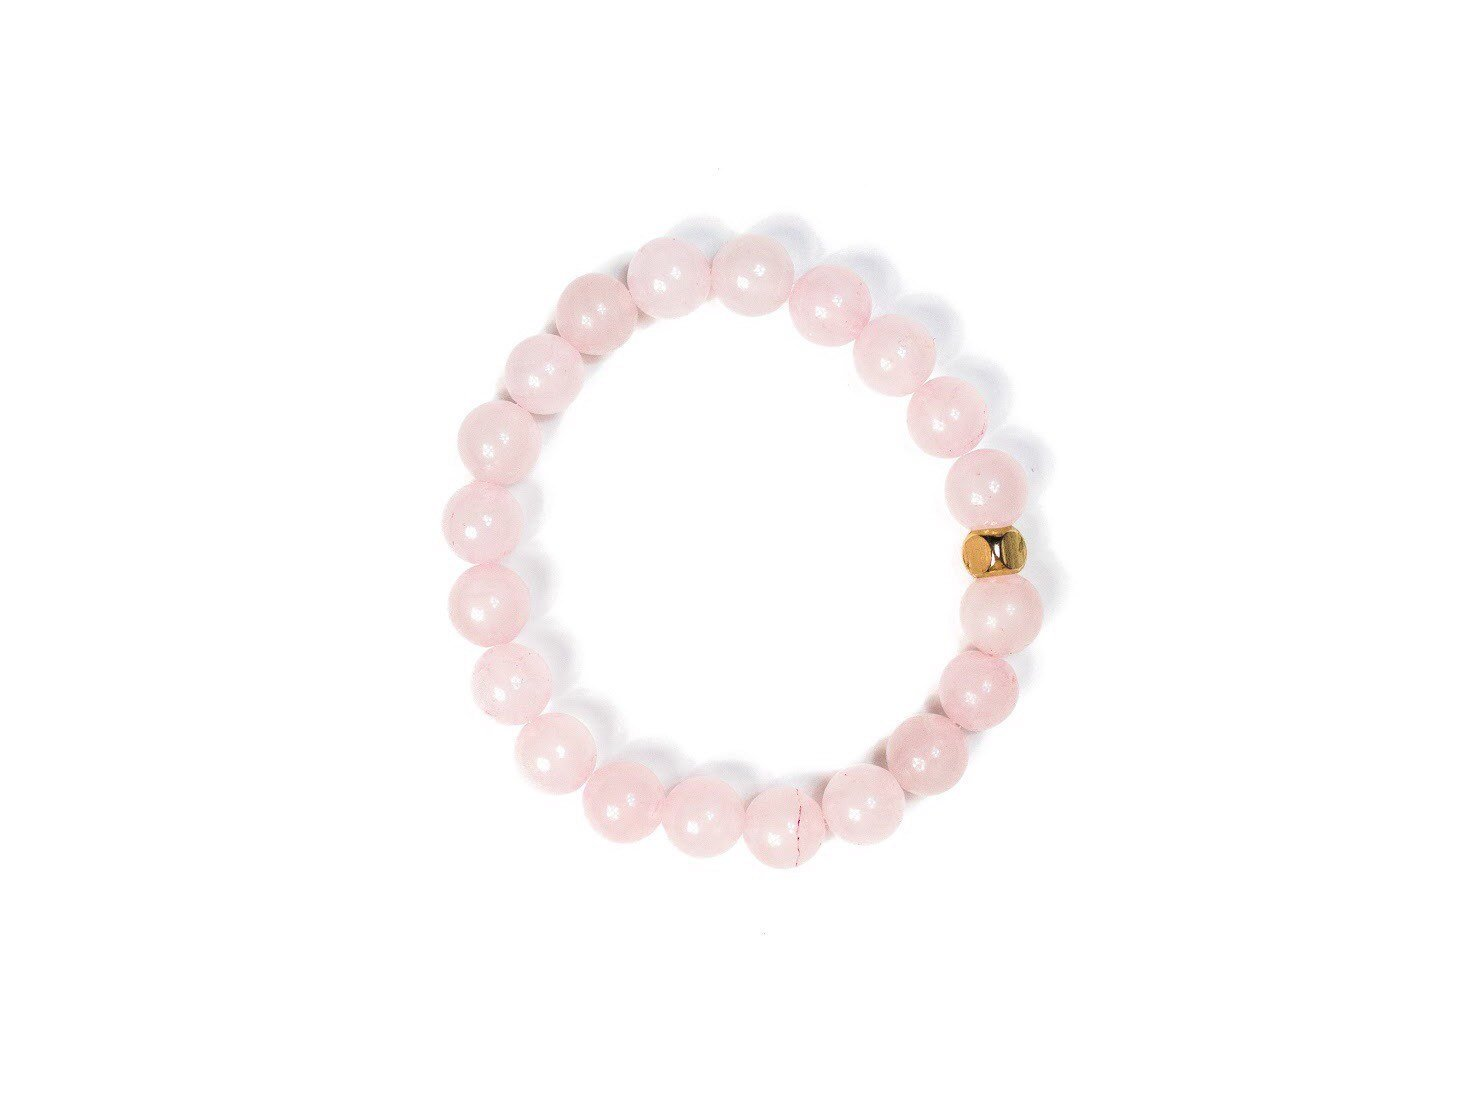 Gloss Rose Quartz (Love)